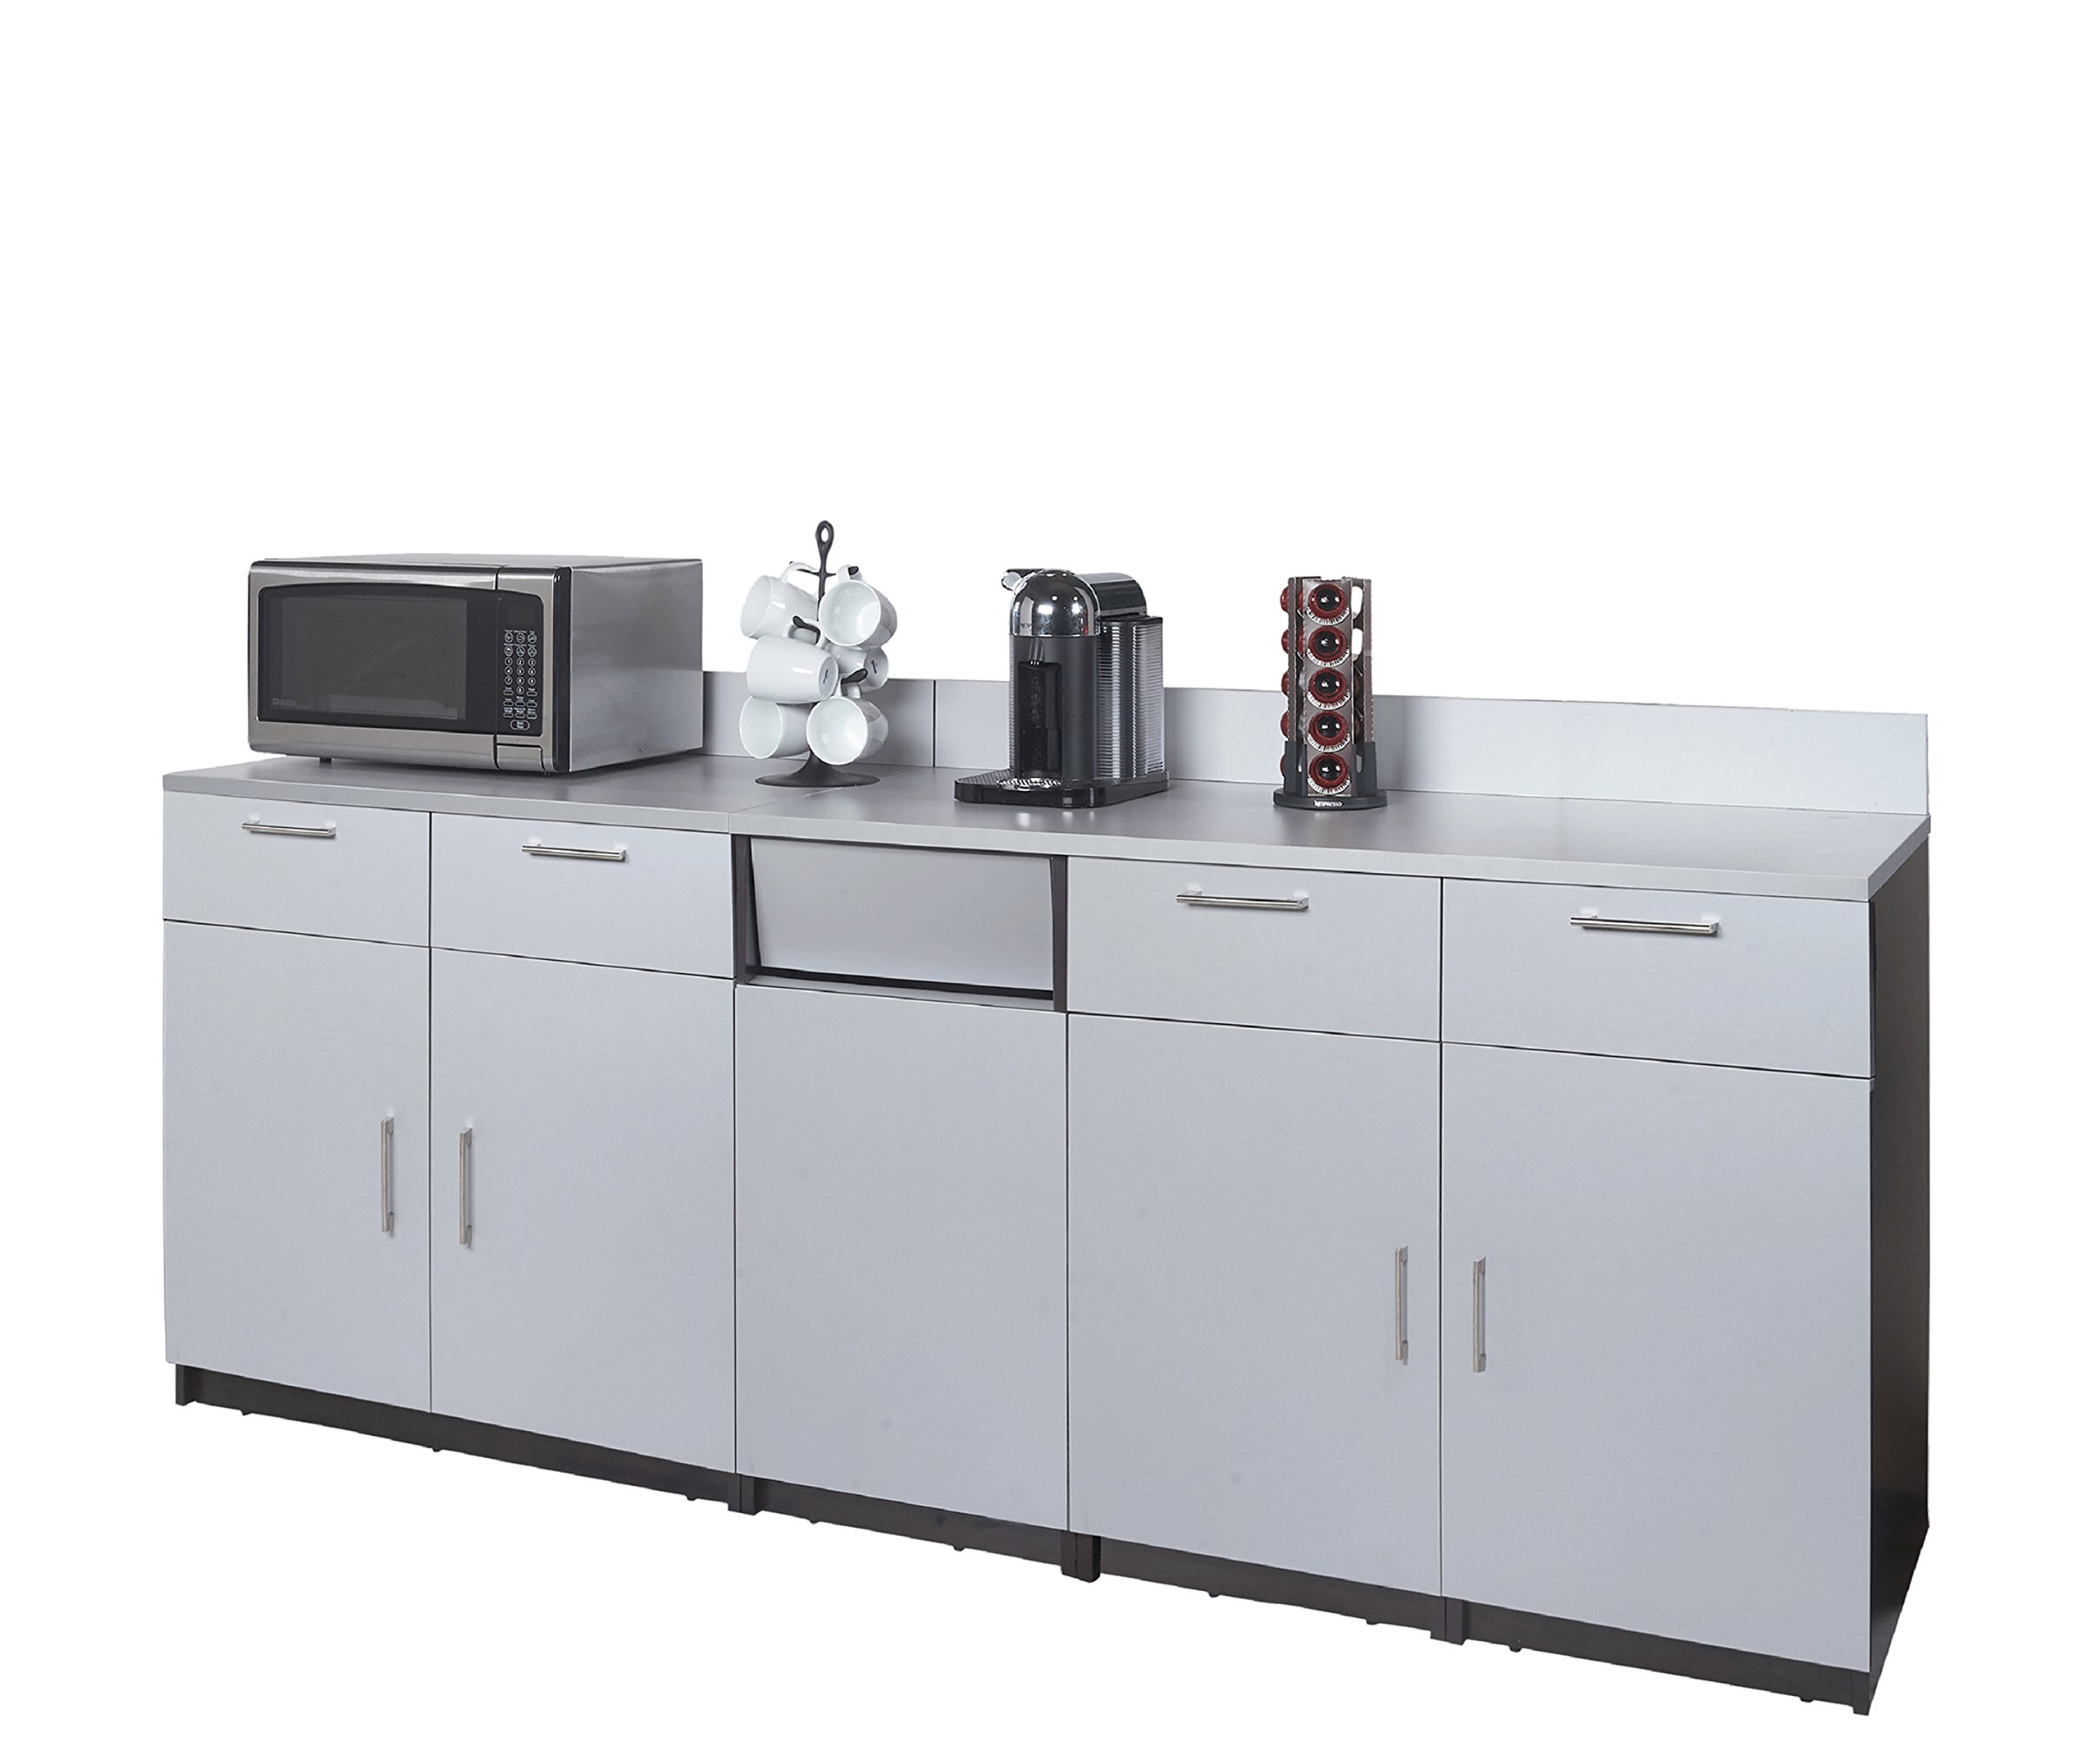 Coffee Kitchen Lunch Break Room Cabinets Model 4511 BREAKTIME 3 Piece Group Color Espresso/Silver Metallic - Factory Assembled (NOT RTA) Furniture Items ONLY.